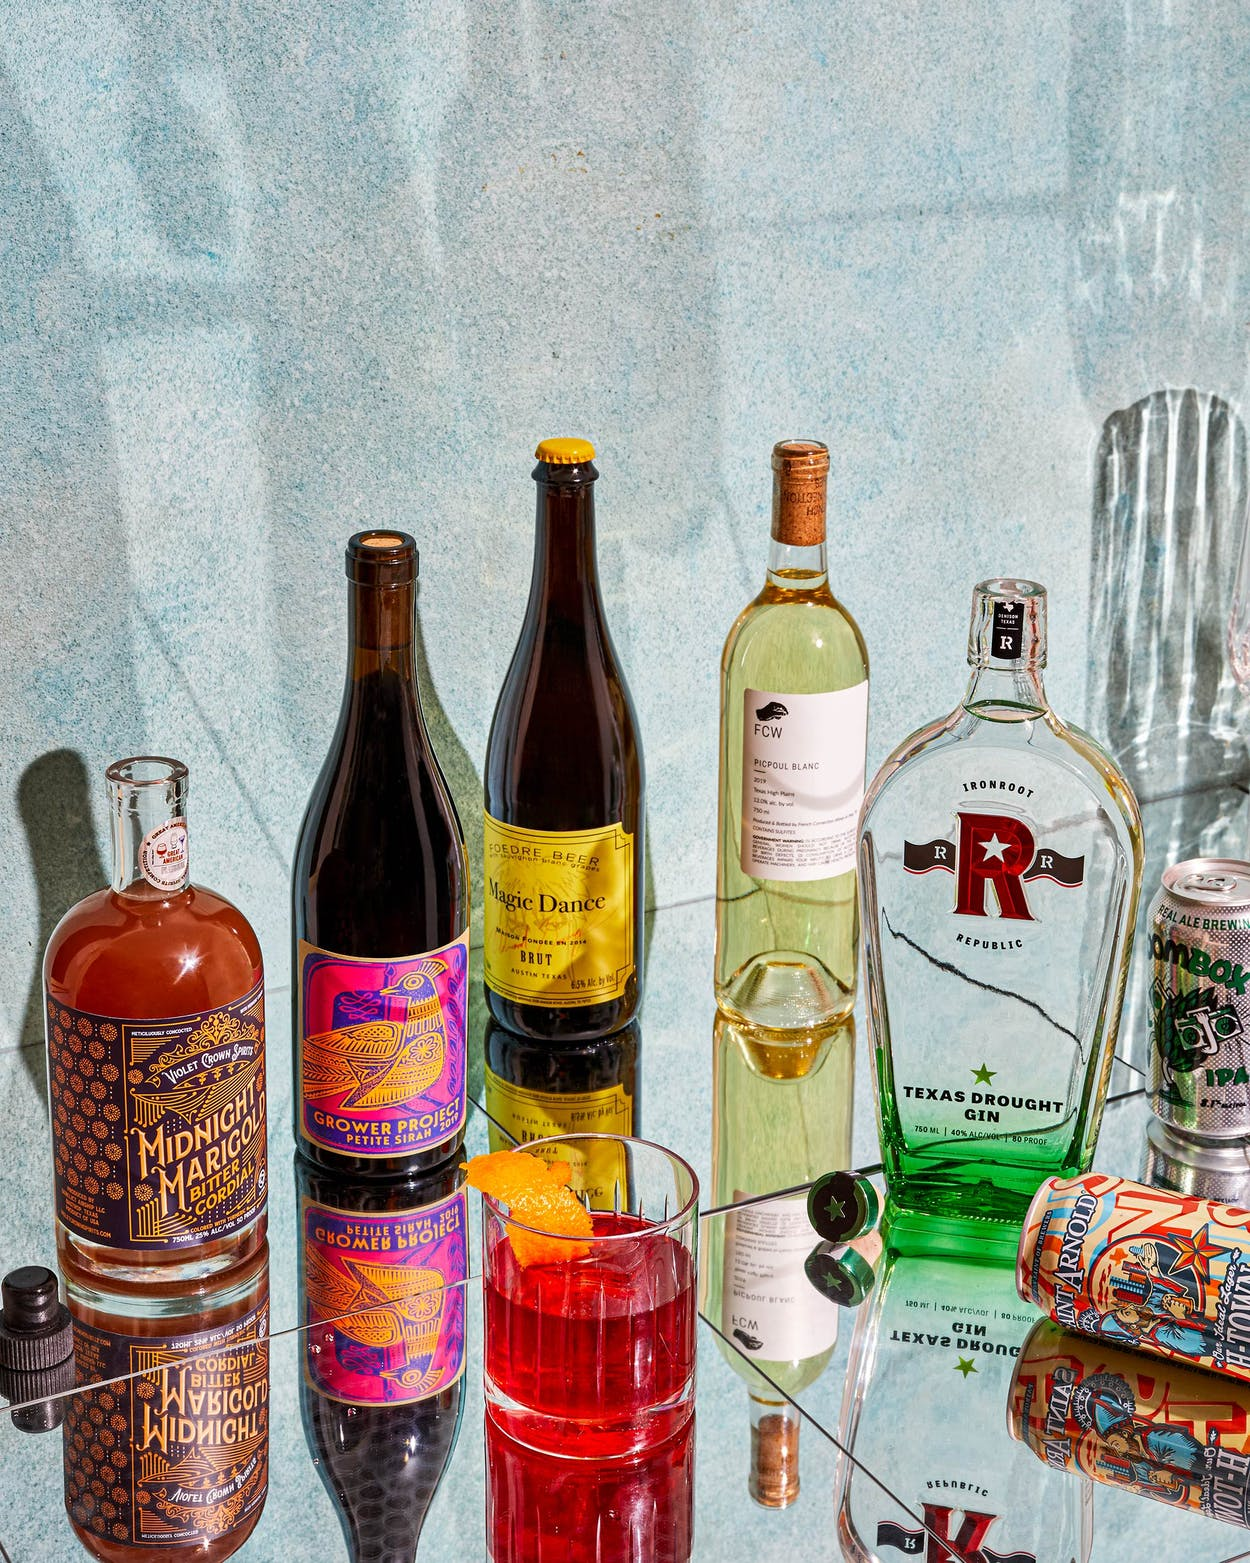 Some of our favorite new Texas wines, beers and spirits.